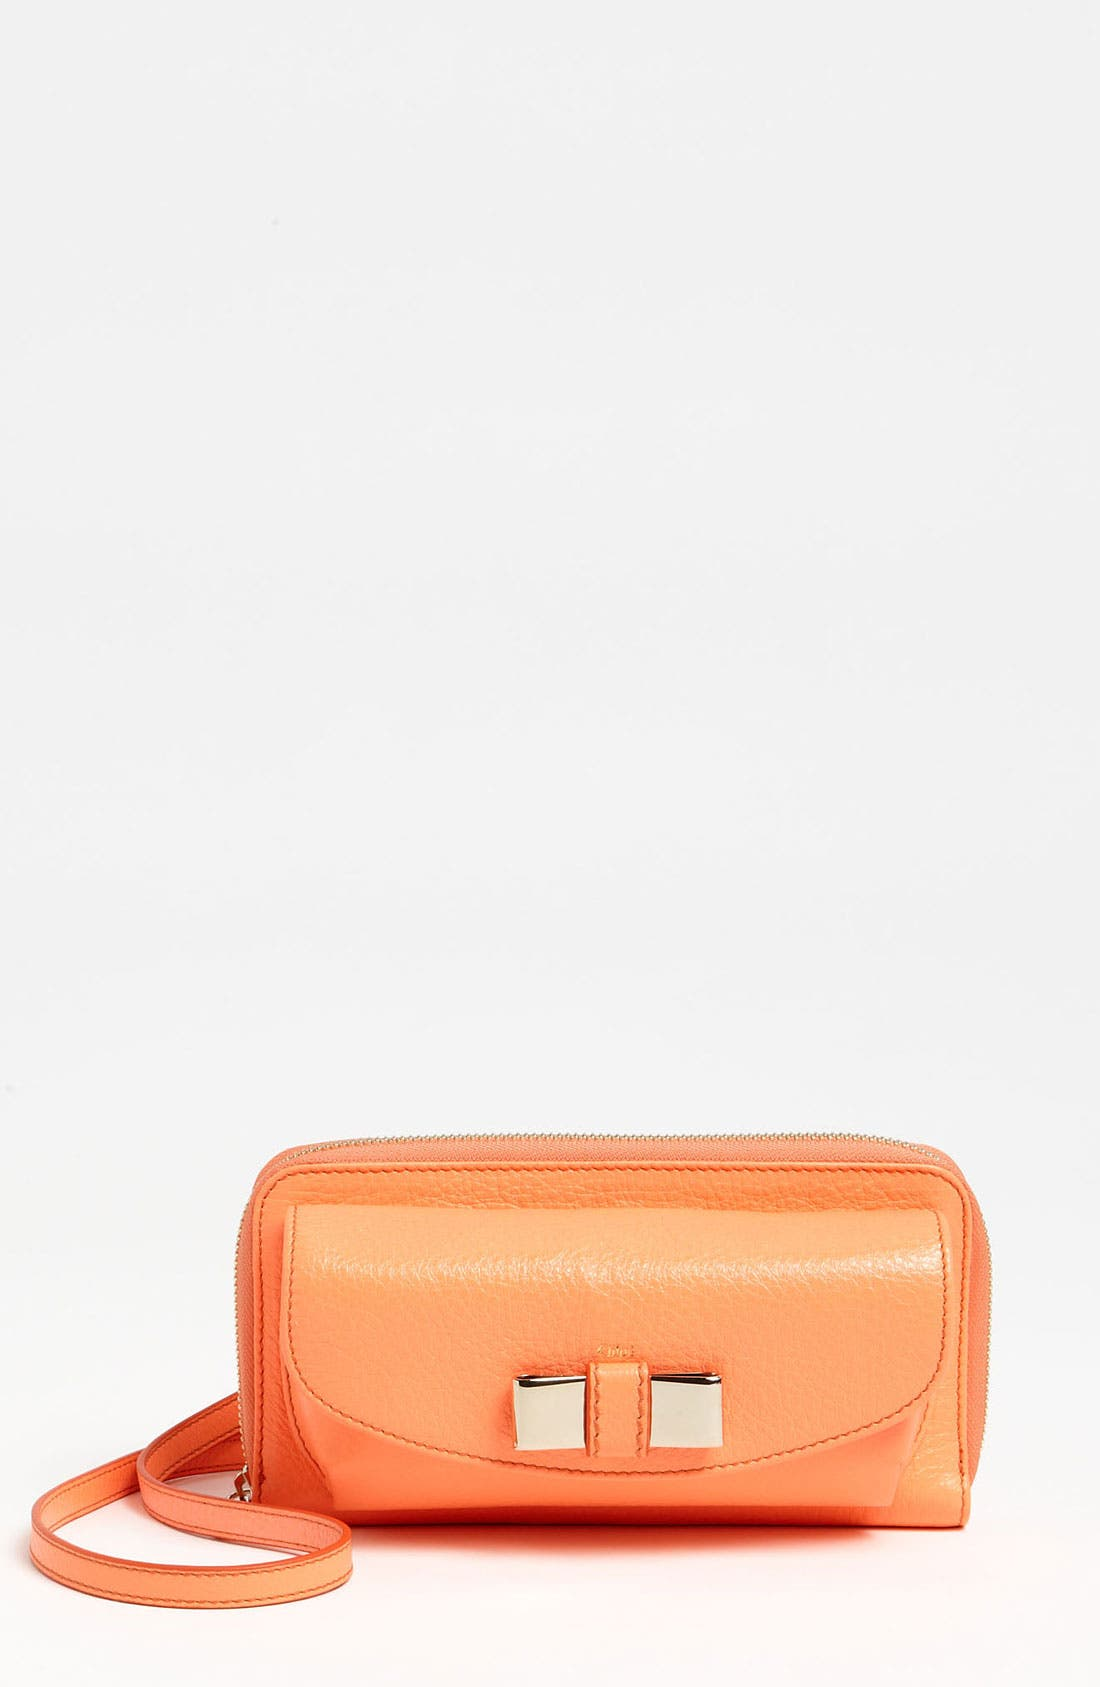 Alternate Image 1 Selected - Chloé 'Lily - Long' Sunglasses Case & Crossbody Wallet